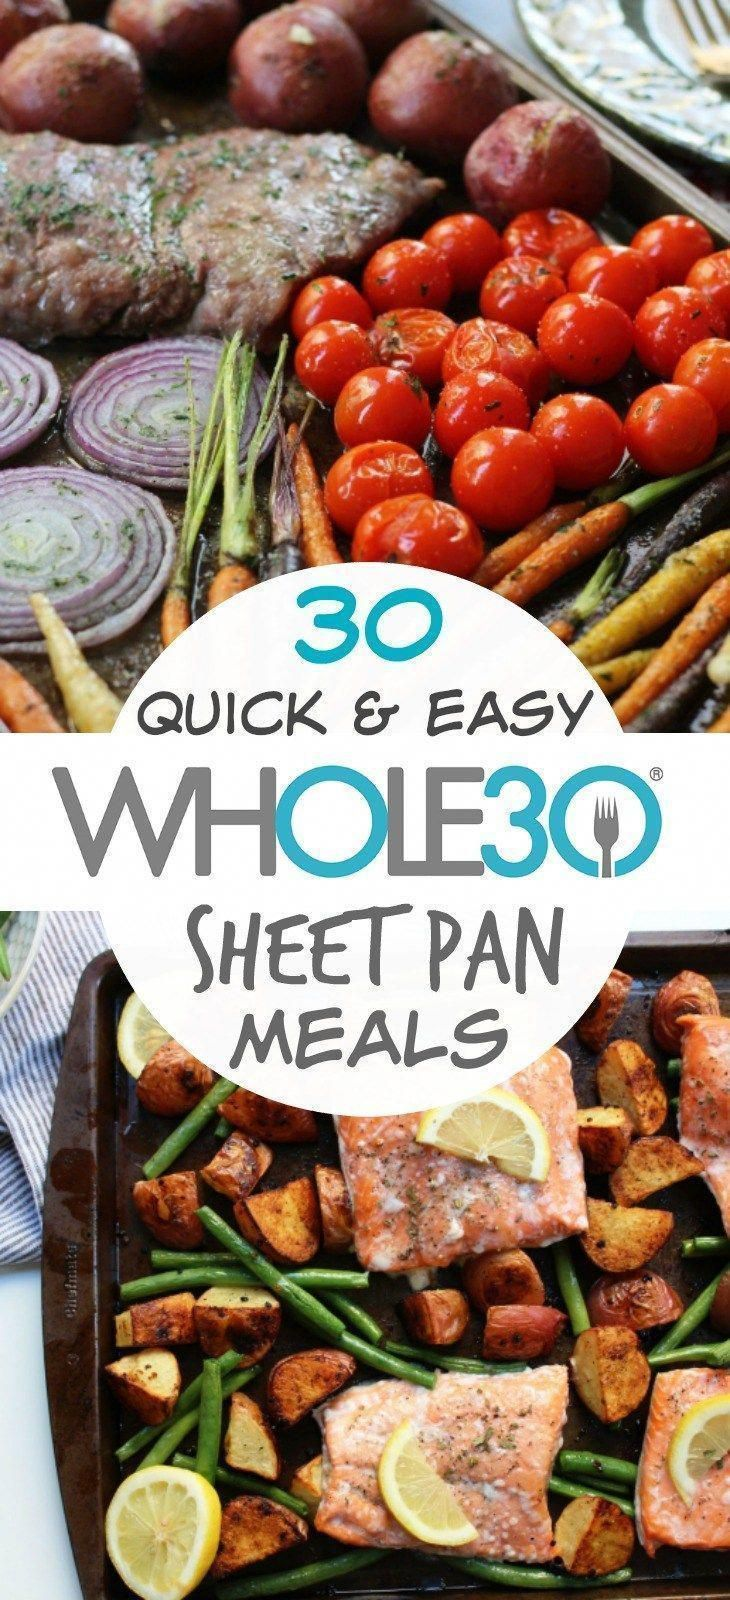 30 Whole30 Sheet Pan Recipes: The Best Quick and Easy One Pan Meals - Whole Kitchen Sink